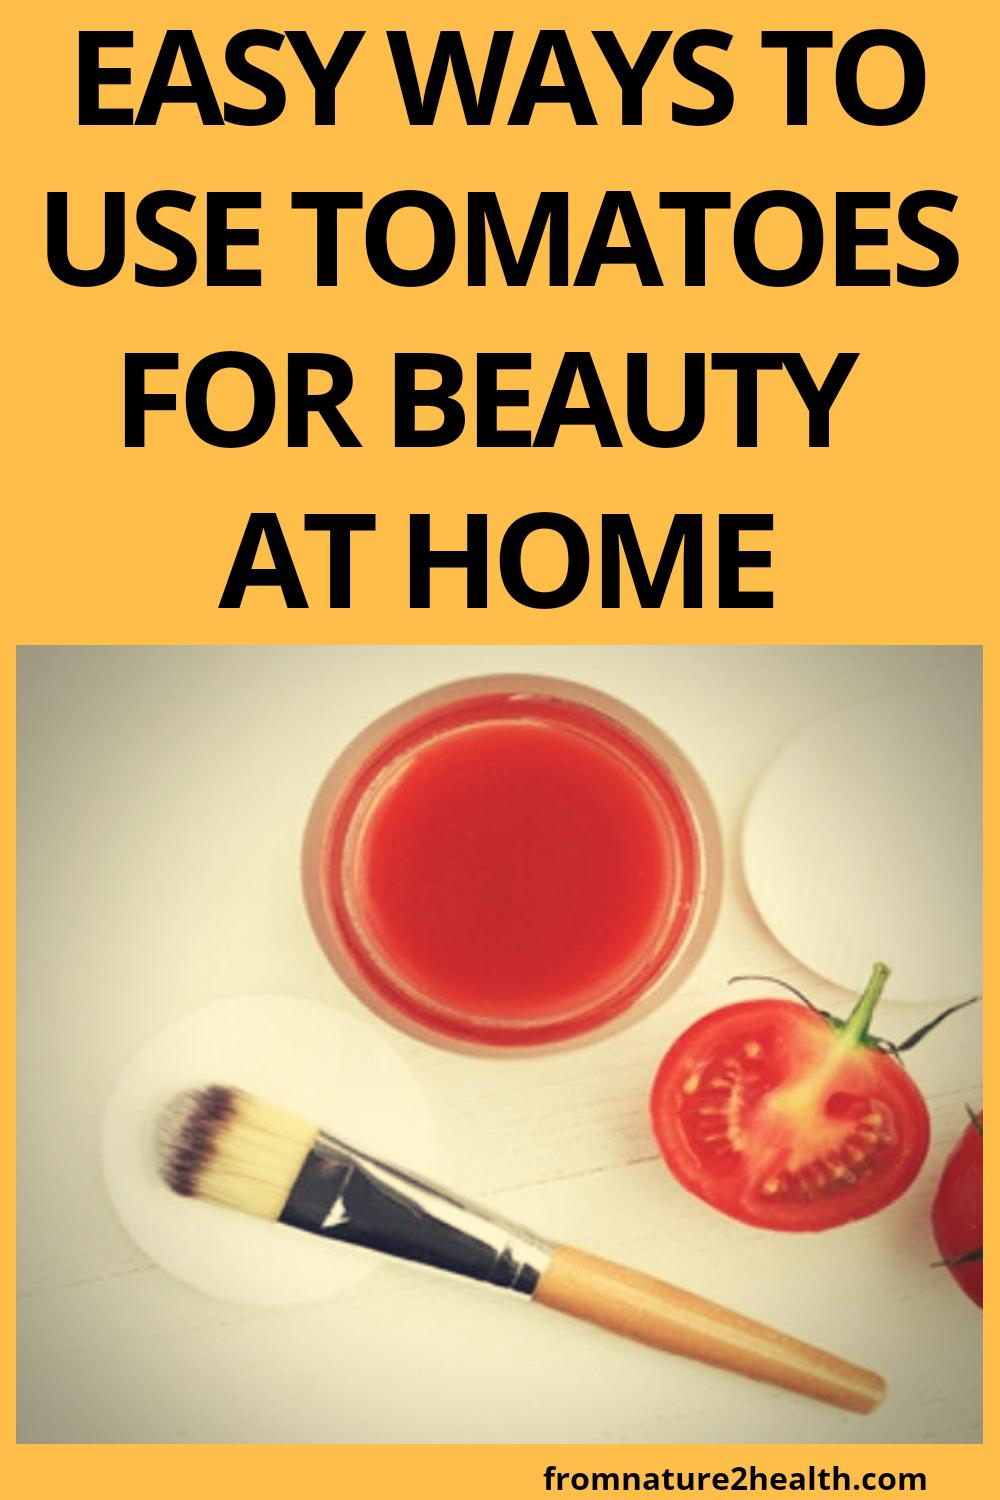 Easy Ways to Use Tomatoes for Beauty at Home